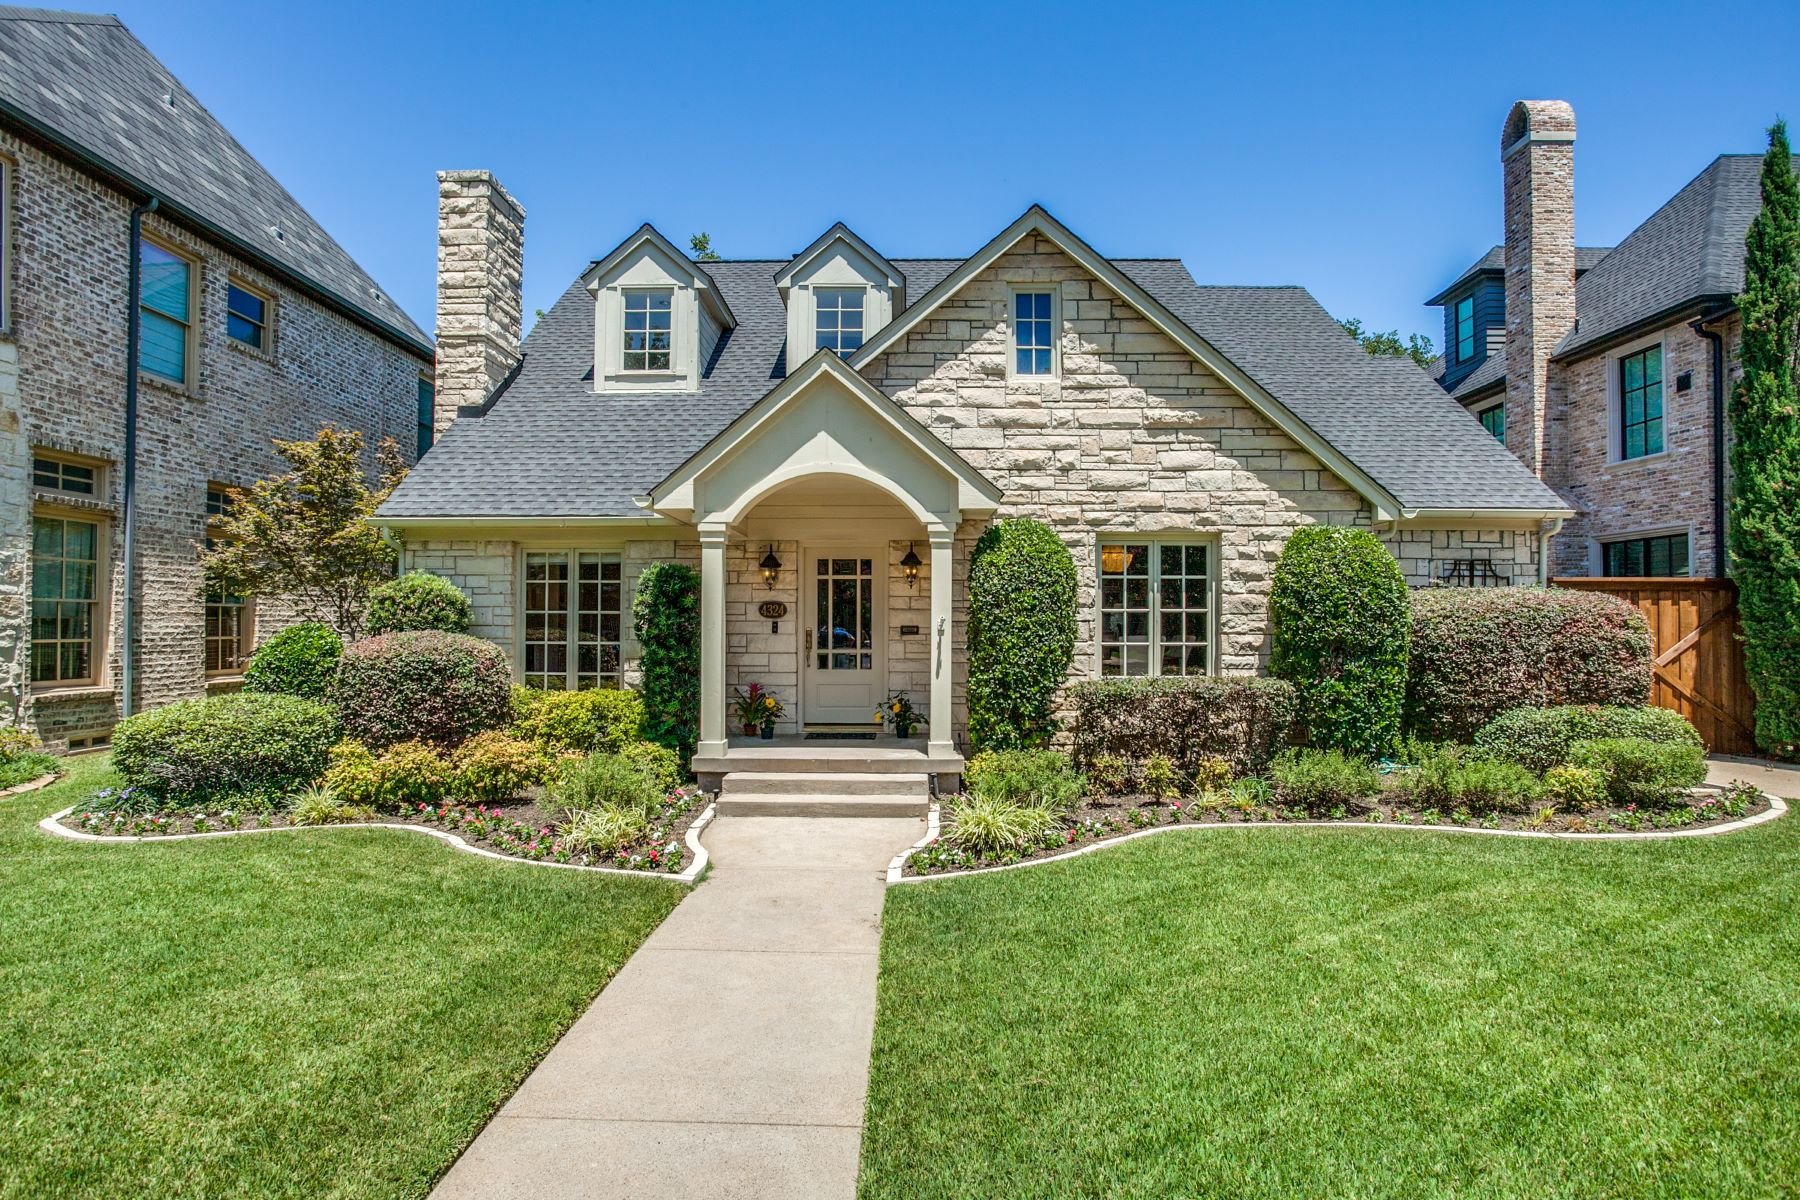 Single Family Homes for Sale at 4324 Bryn Mawr Drive University Park, Texas 75225 United States